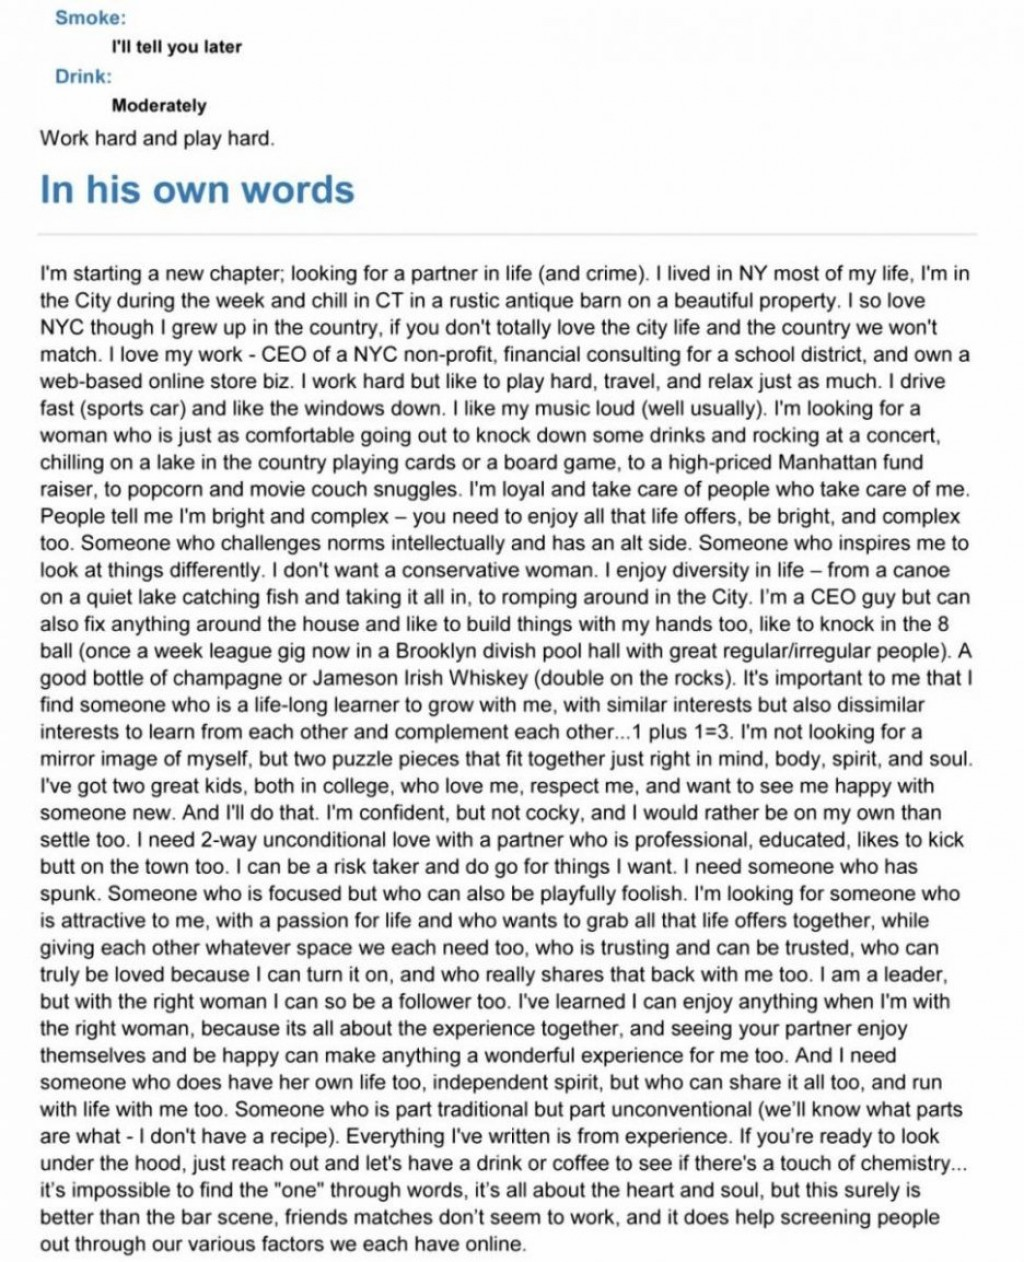 015 Profile Essay On Person Galante Web Writing Read Essays Famouss Of Outline Homeless 936x1154 Staggering A How To Start Example Famous Large